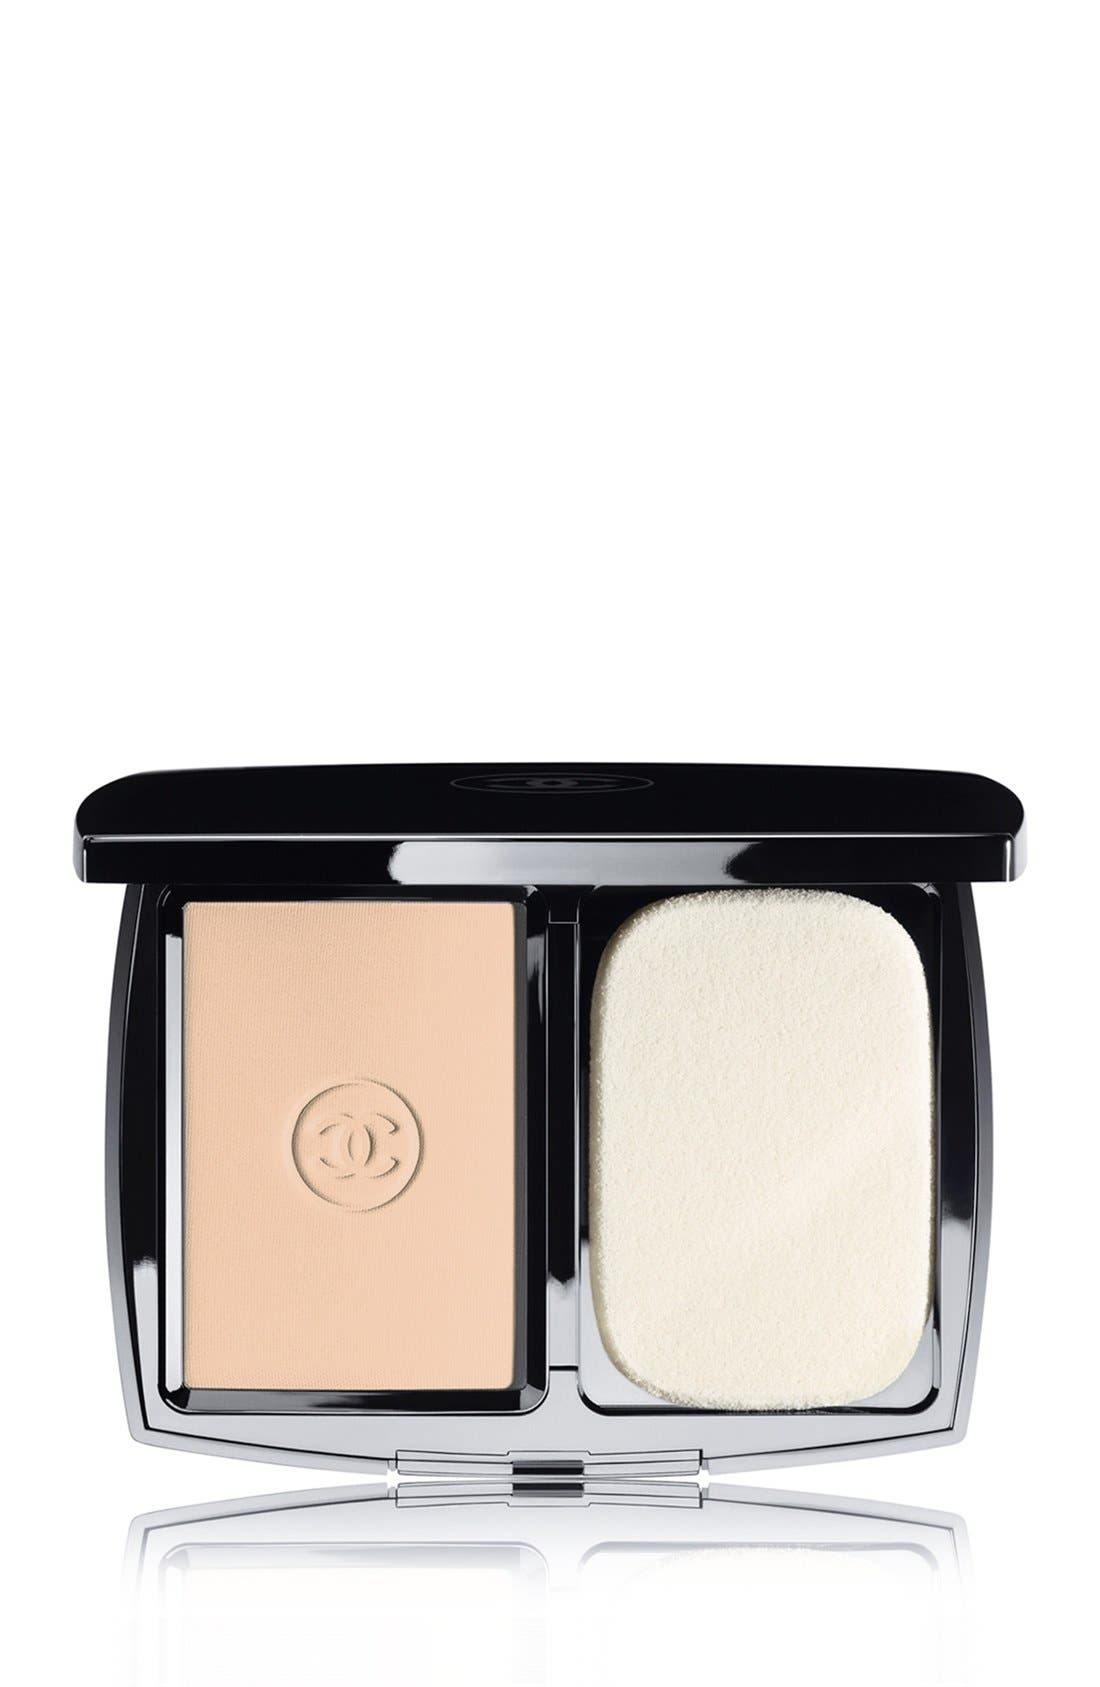 DOUBLE PERFECTION LUMIÈRE<br />Long-Wear Flawless Sunscreen Powder Makeup Broad Spectrum SPF 15,                             Main thumbnail 4, color,